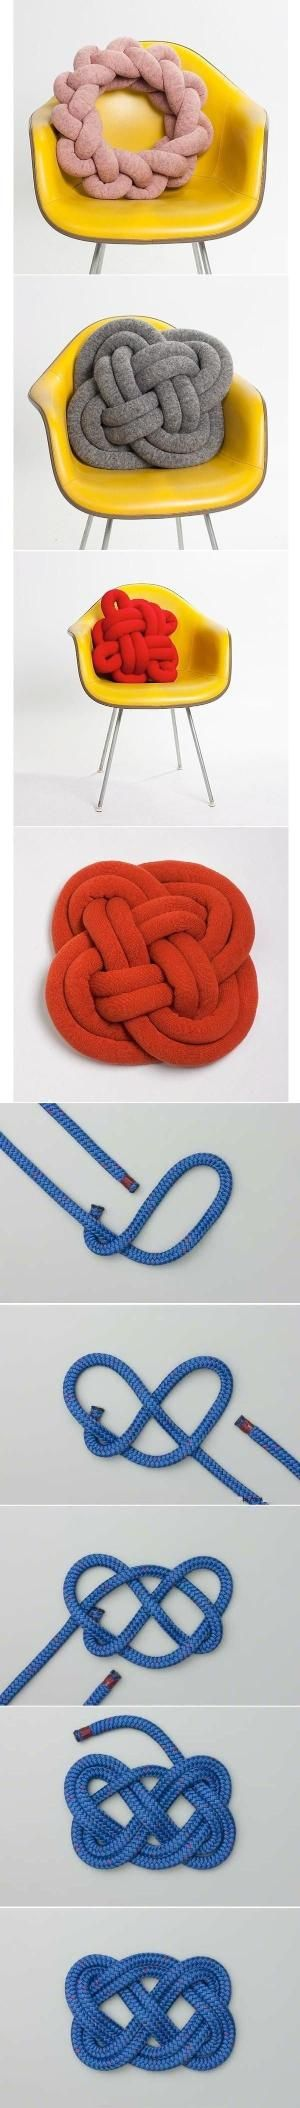 Diy Squishy Knot Pillow : DIY Knot Pillow by iris-flower For the Home Pinterest DIY and crafts, Knot pillow and Knots